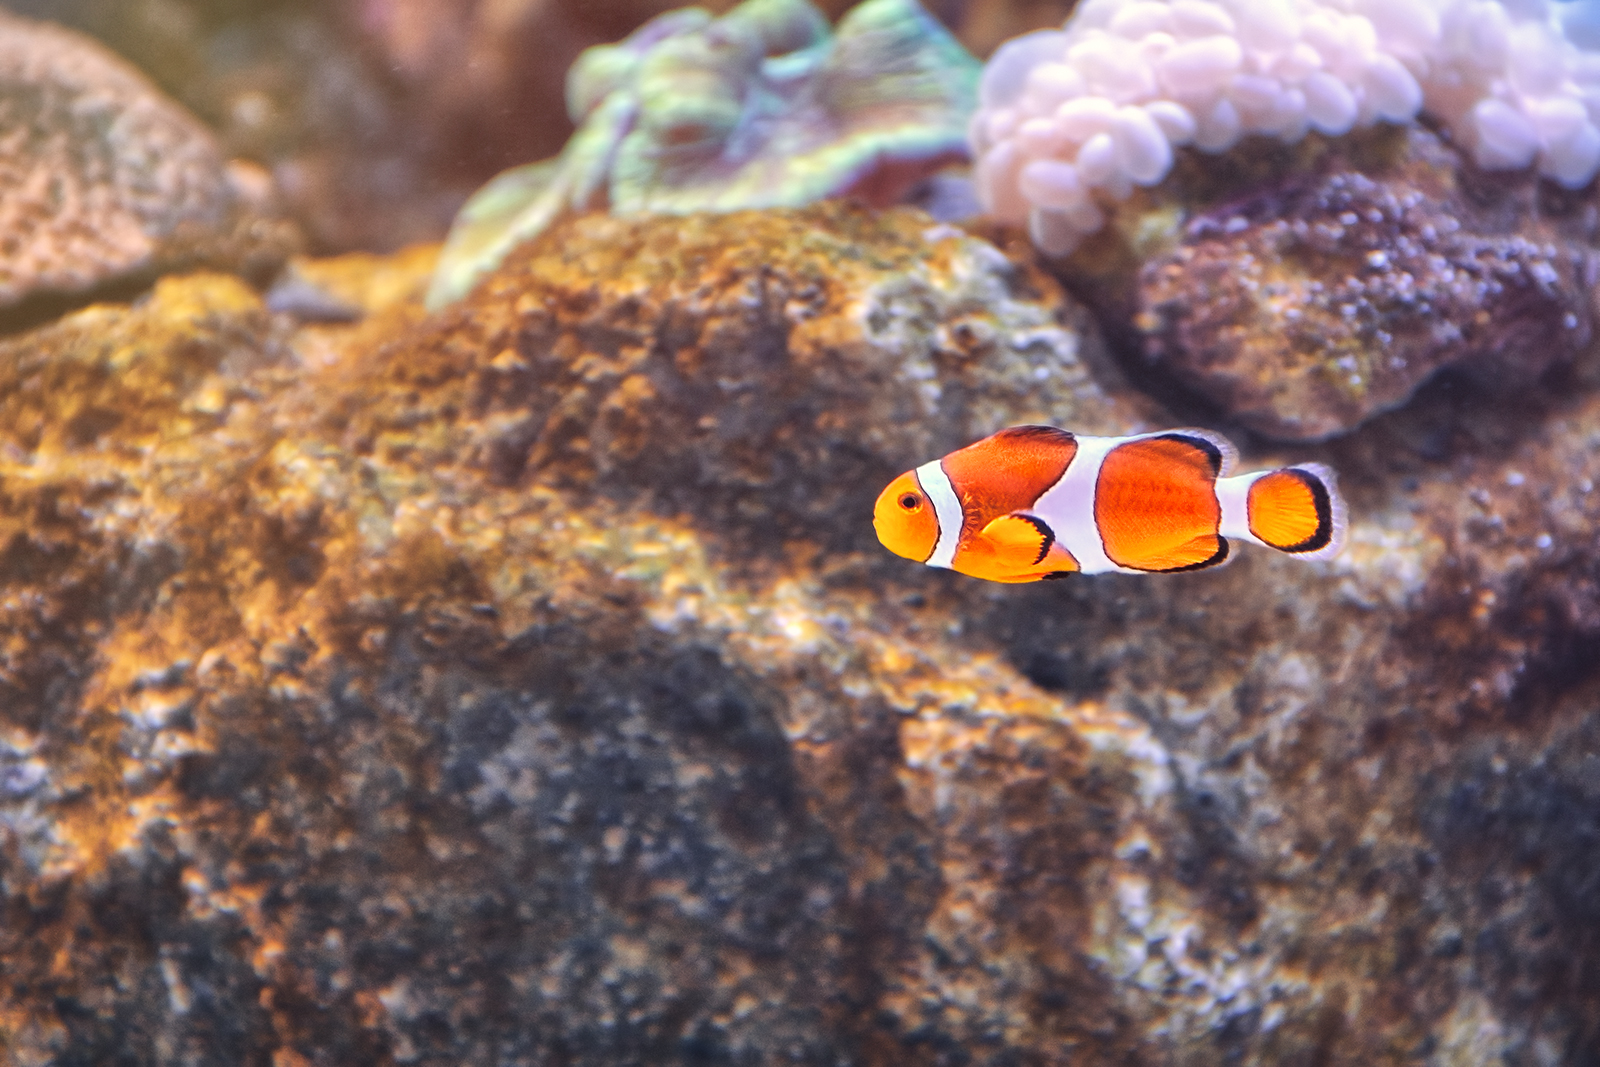 Clownfish Anemonefish or Nemo